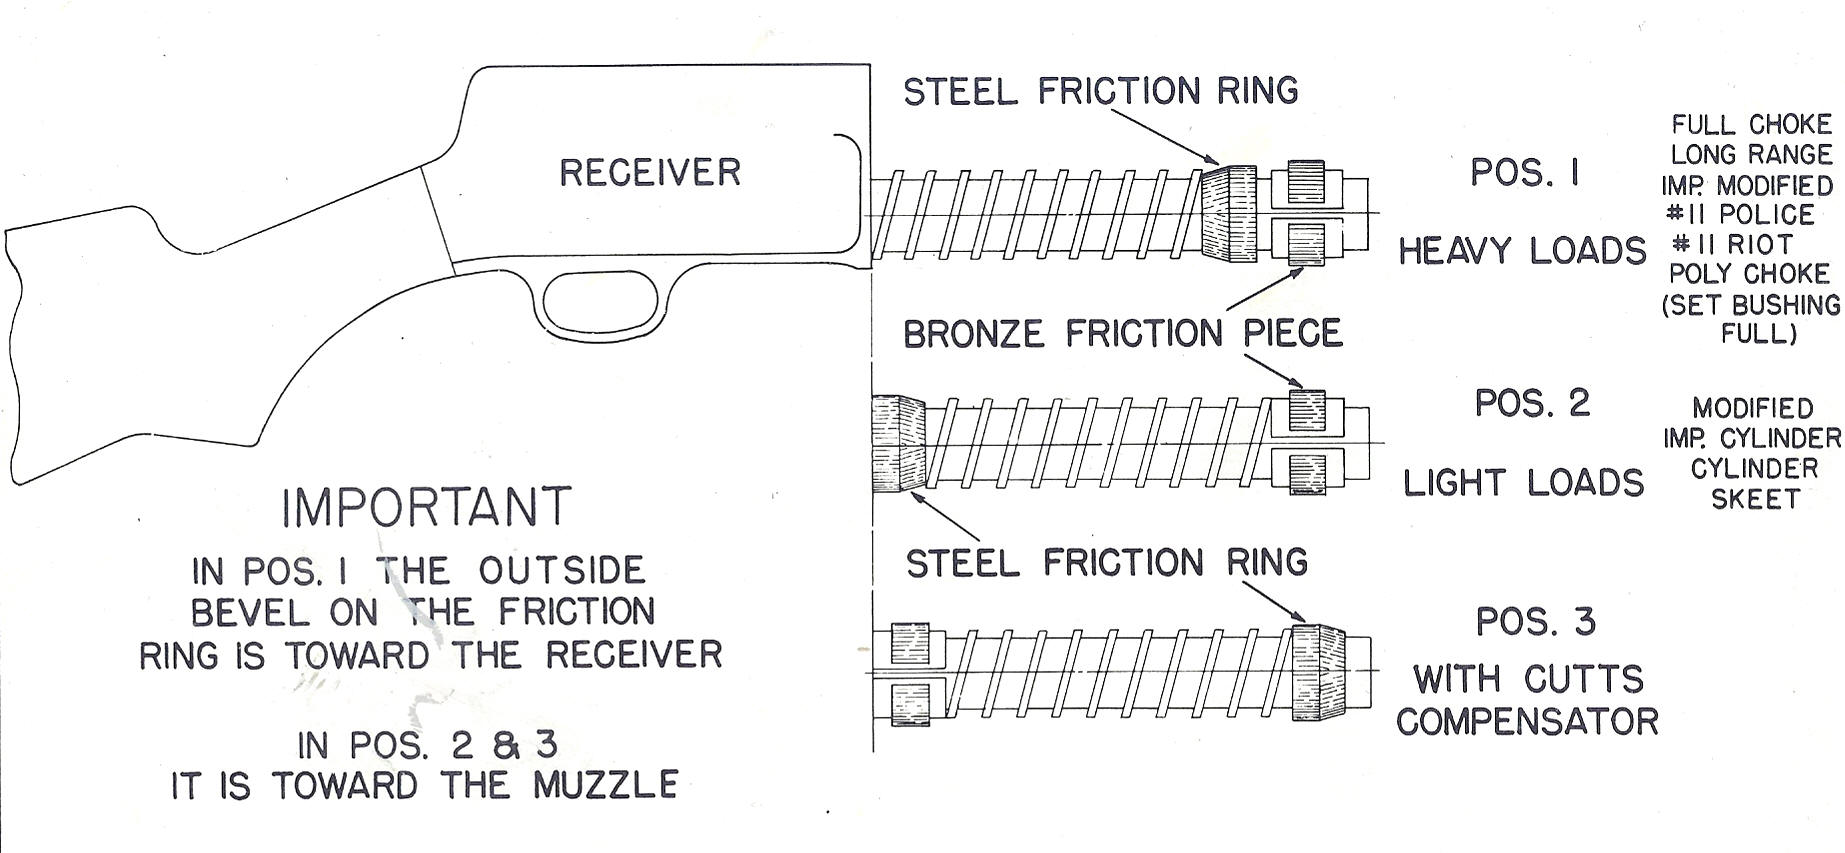 Remington 48 Parts Diagram Wiring Diagrams For Dummies 870 To Download Model 11 Schematic 87